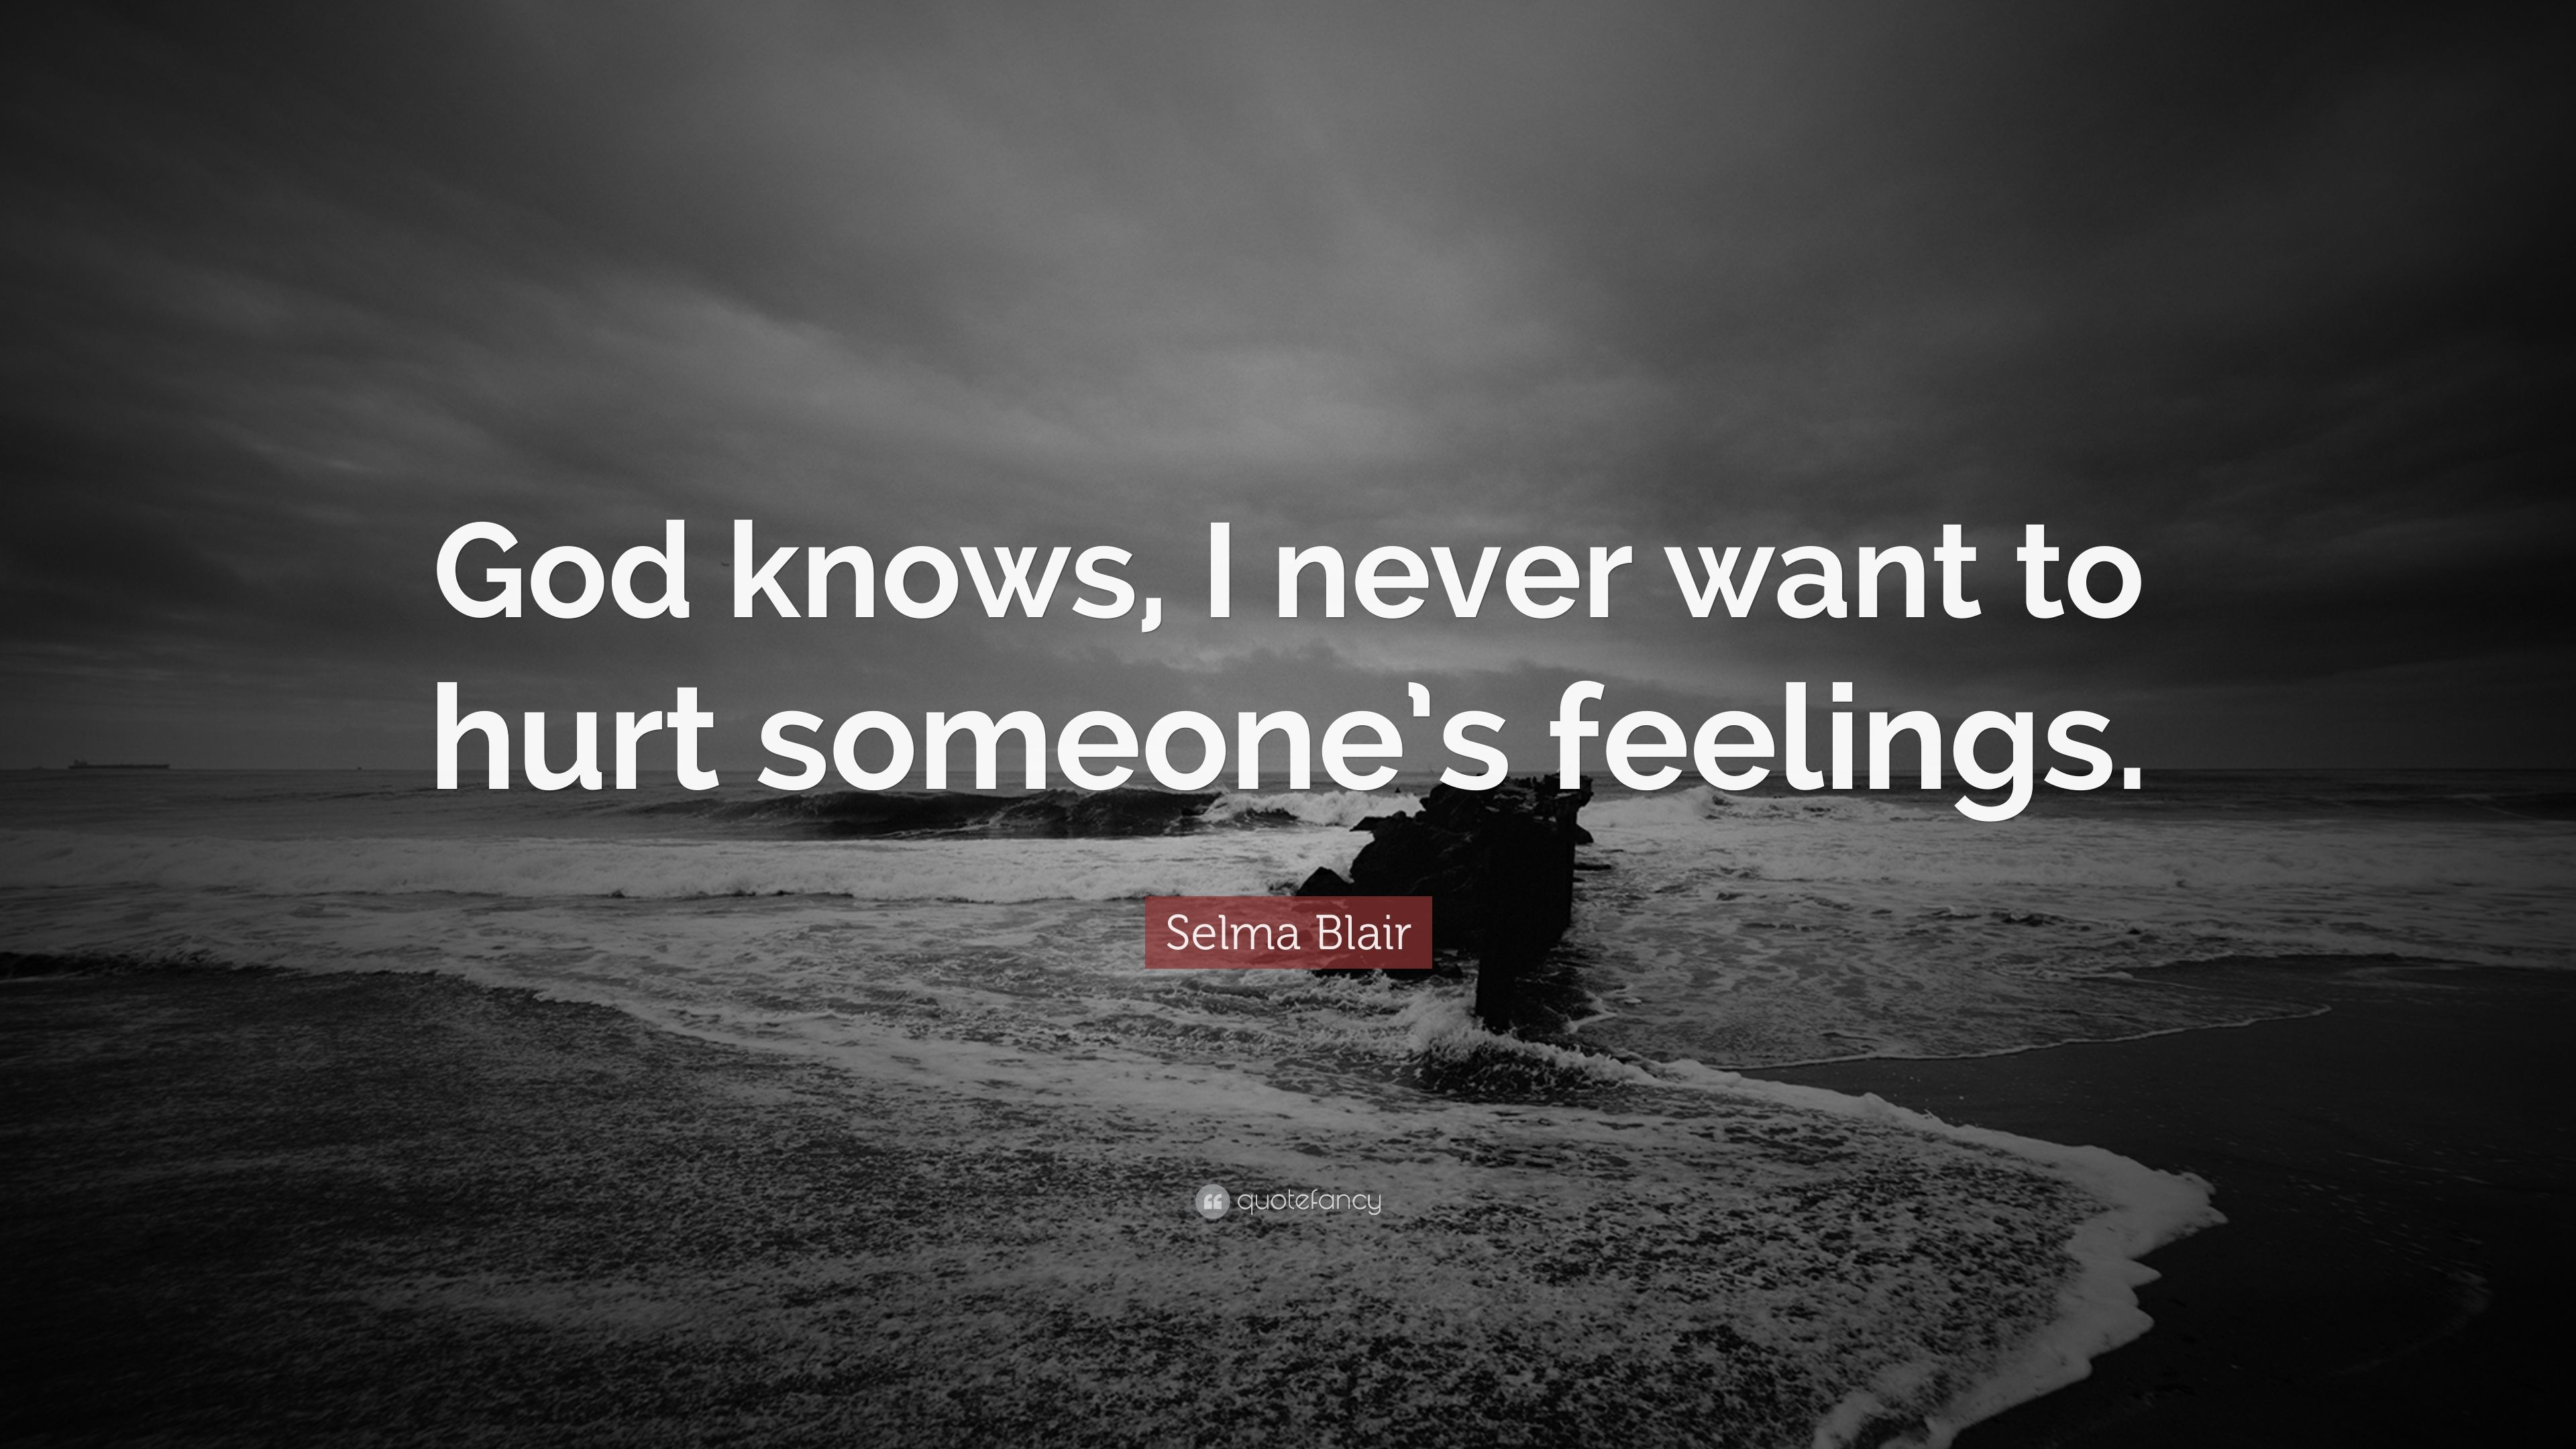 Selma Blair Quote God Knows I Never Want To Hurt Someones